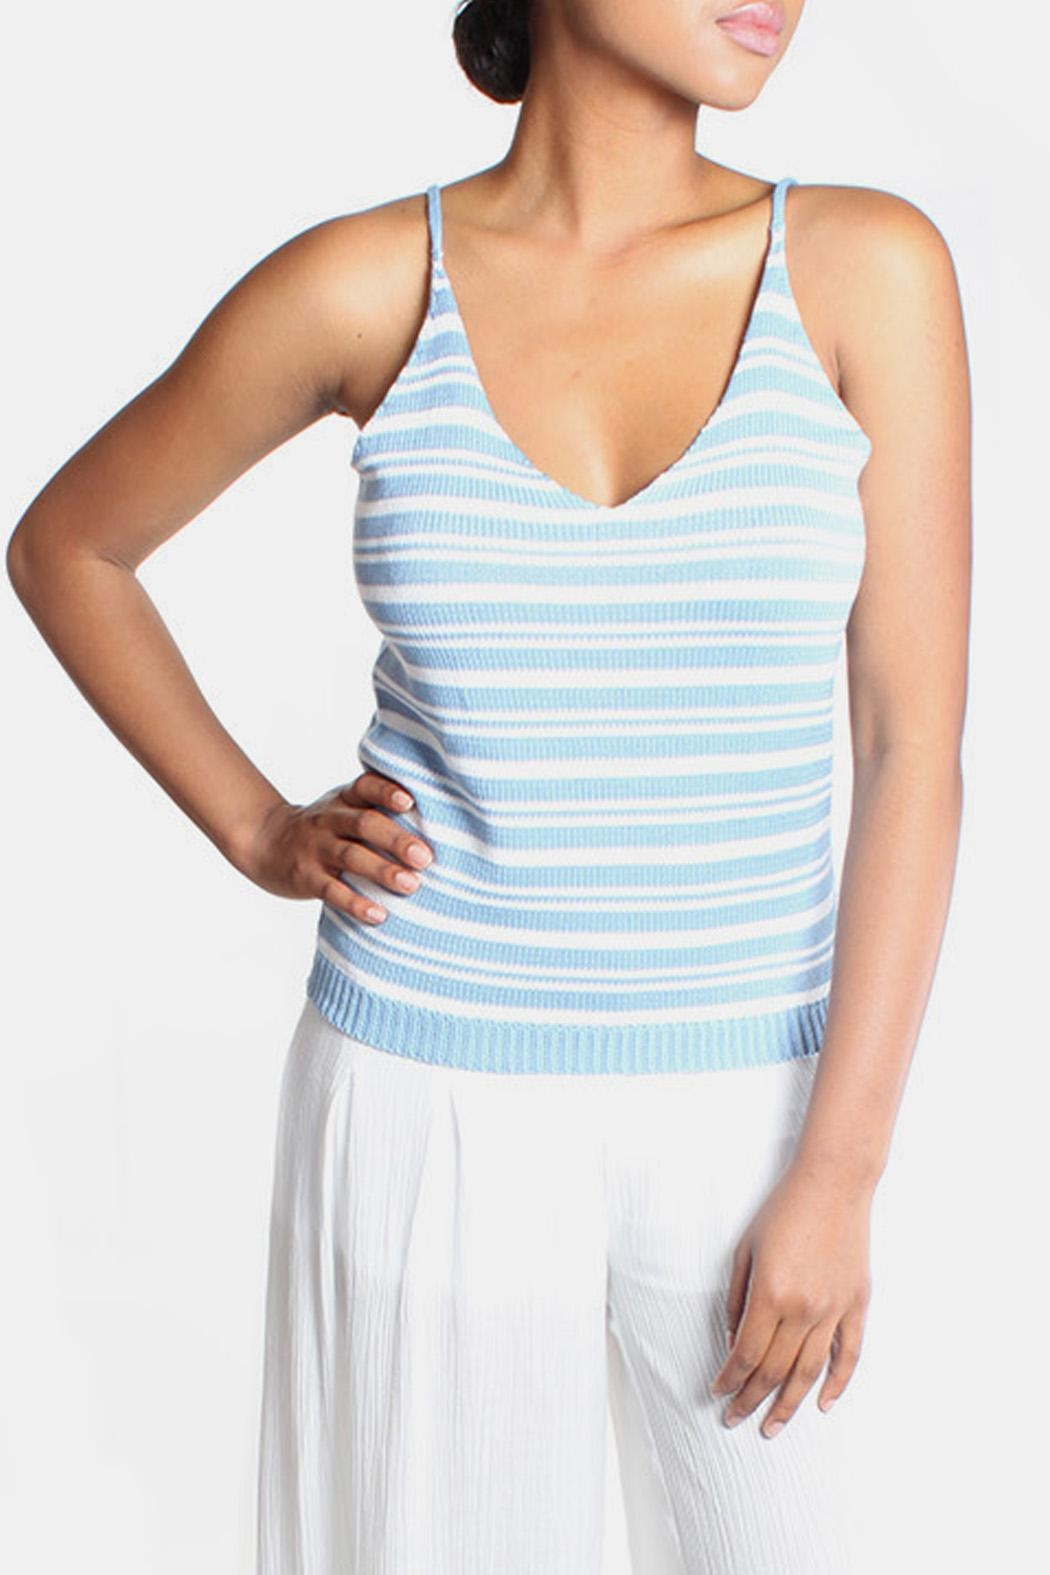 Lumiere Sky Knit Striped Top - Main Image